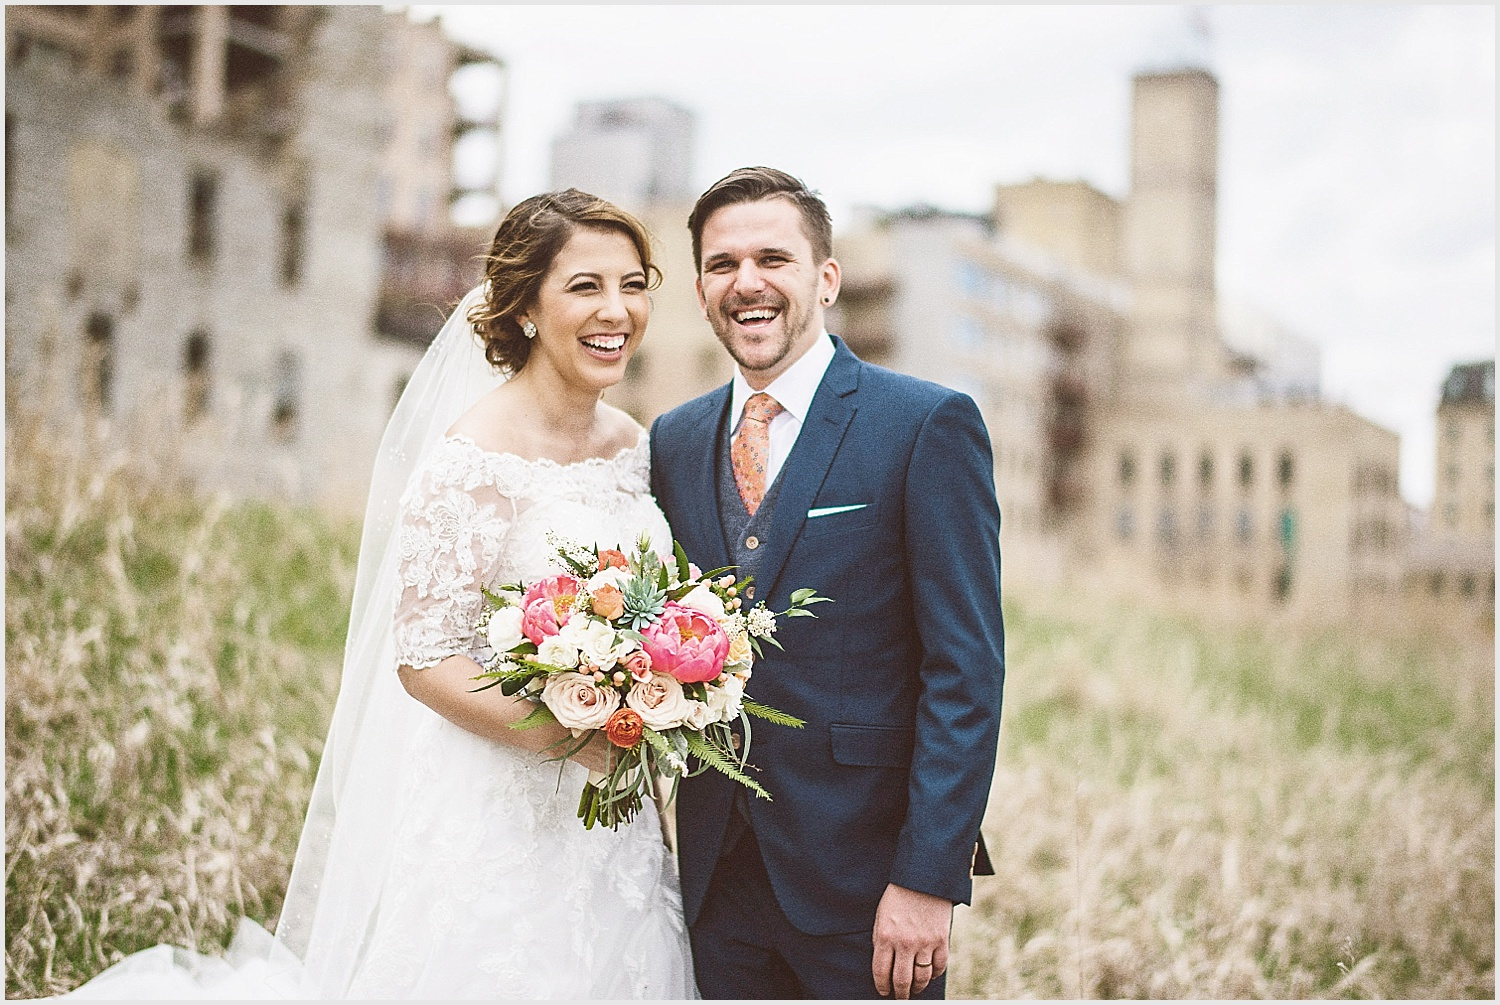 zaspels_Minneapolis_wedding_portraits_lucas_botz_photography_012.jpg